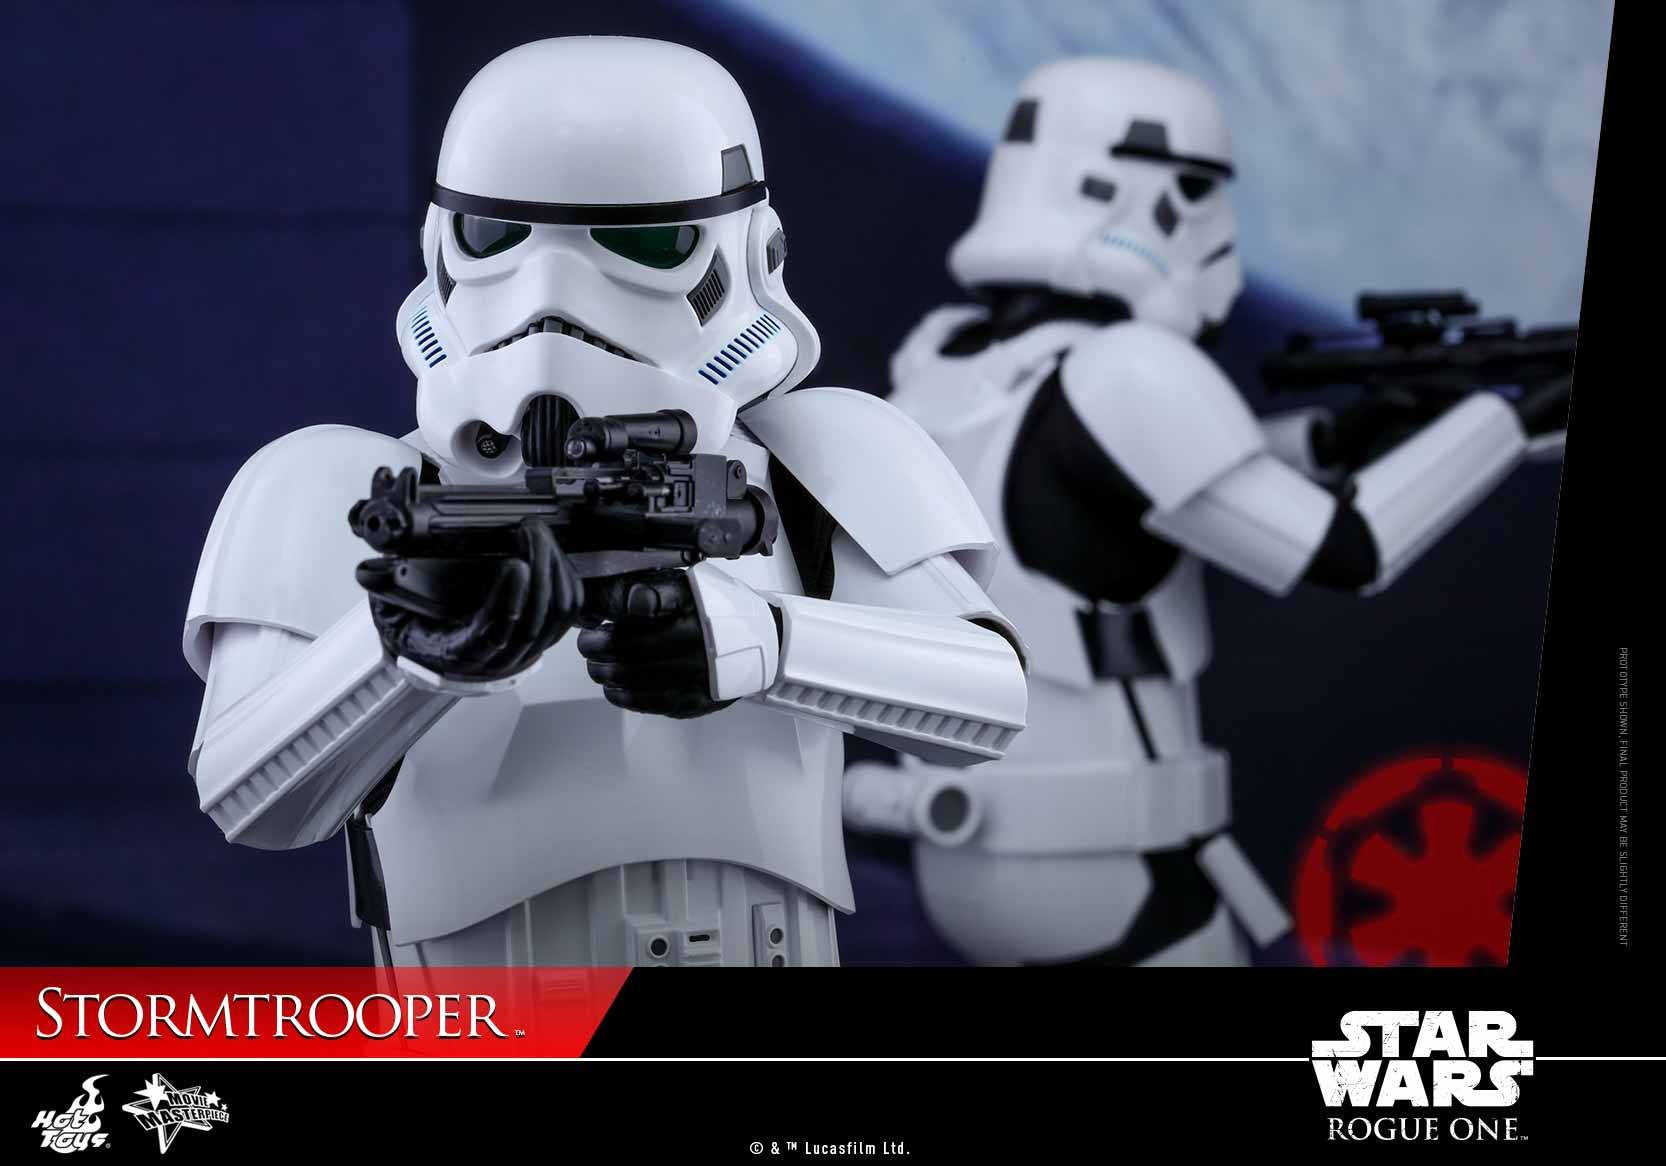 Hot Toys - MMS393 - Rogue One: A Star Wars Story - Stormtrooper - Marvelous Toys - 6